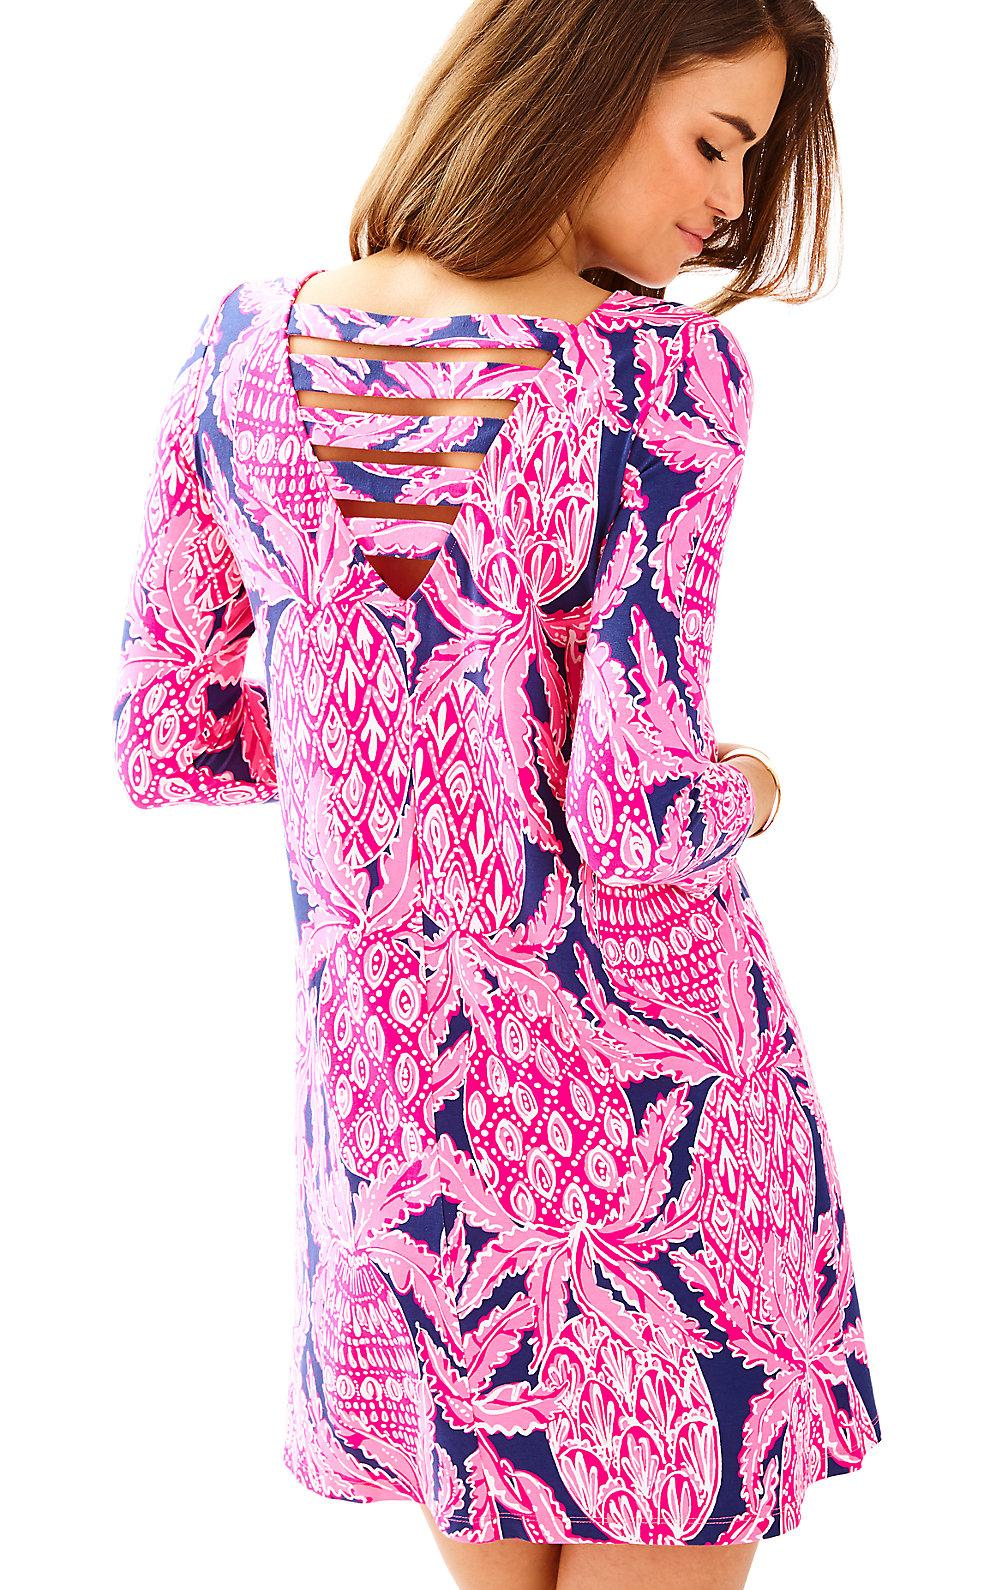 783a9c08016076 Lilly Pulitzer Ophelia Swing Dress In Bright Navy Coco Safari | ModeSens